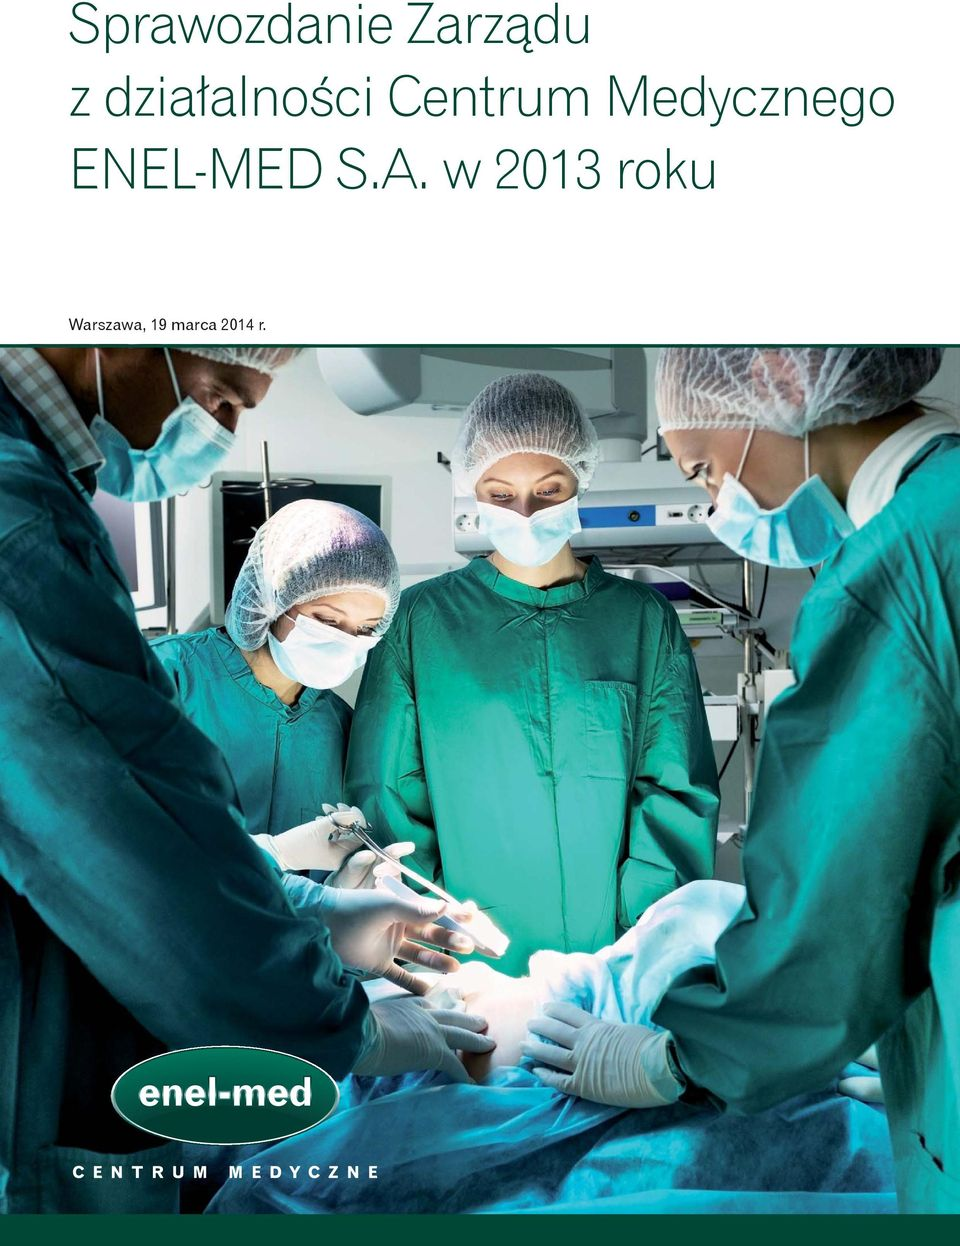 Medycznego ENEL-MED S.A.